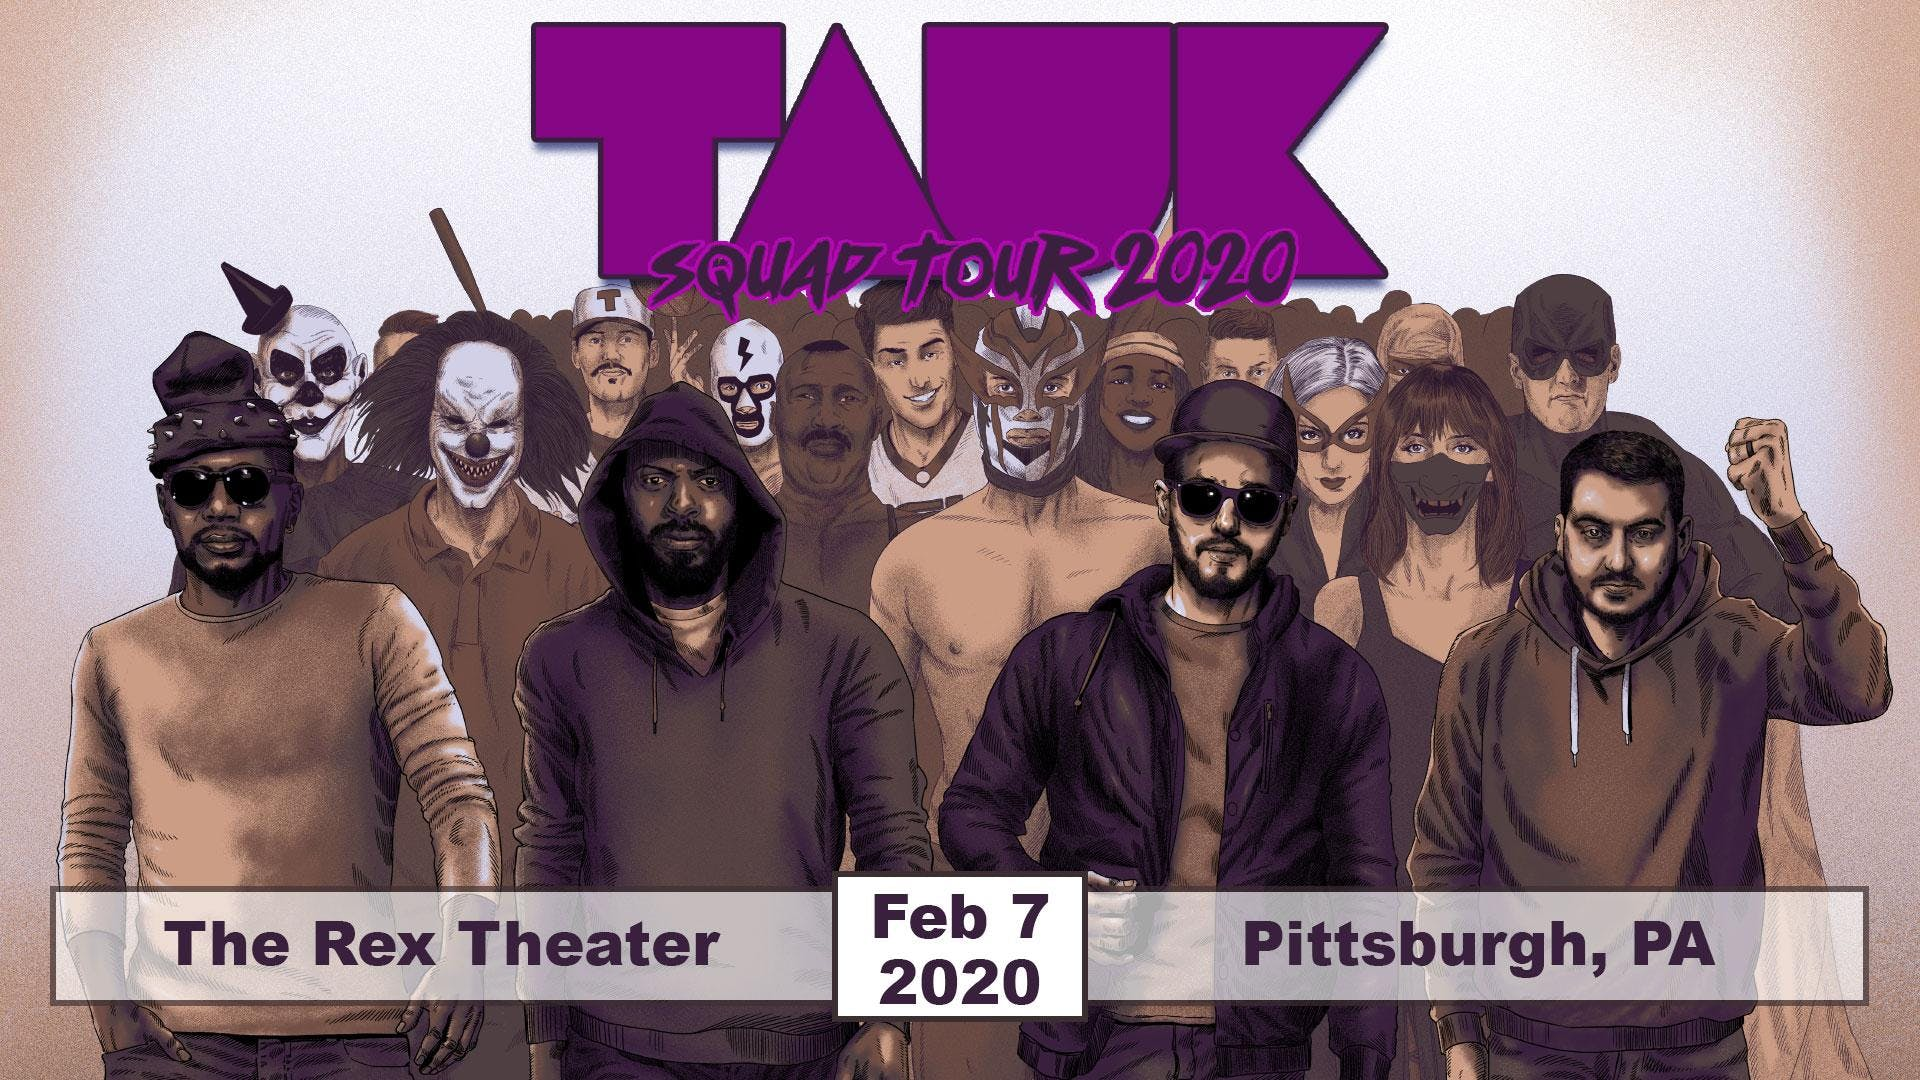 Pittsburgh Events February 2020.Tauk Squad Tour 2020 Tickets The Rex Theater